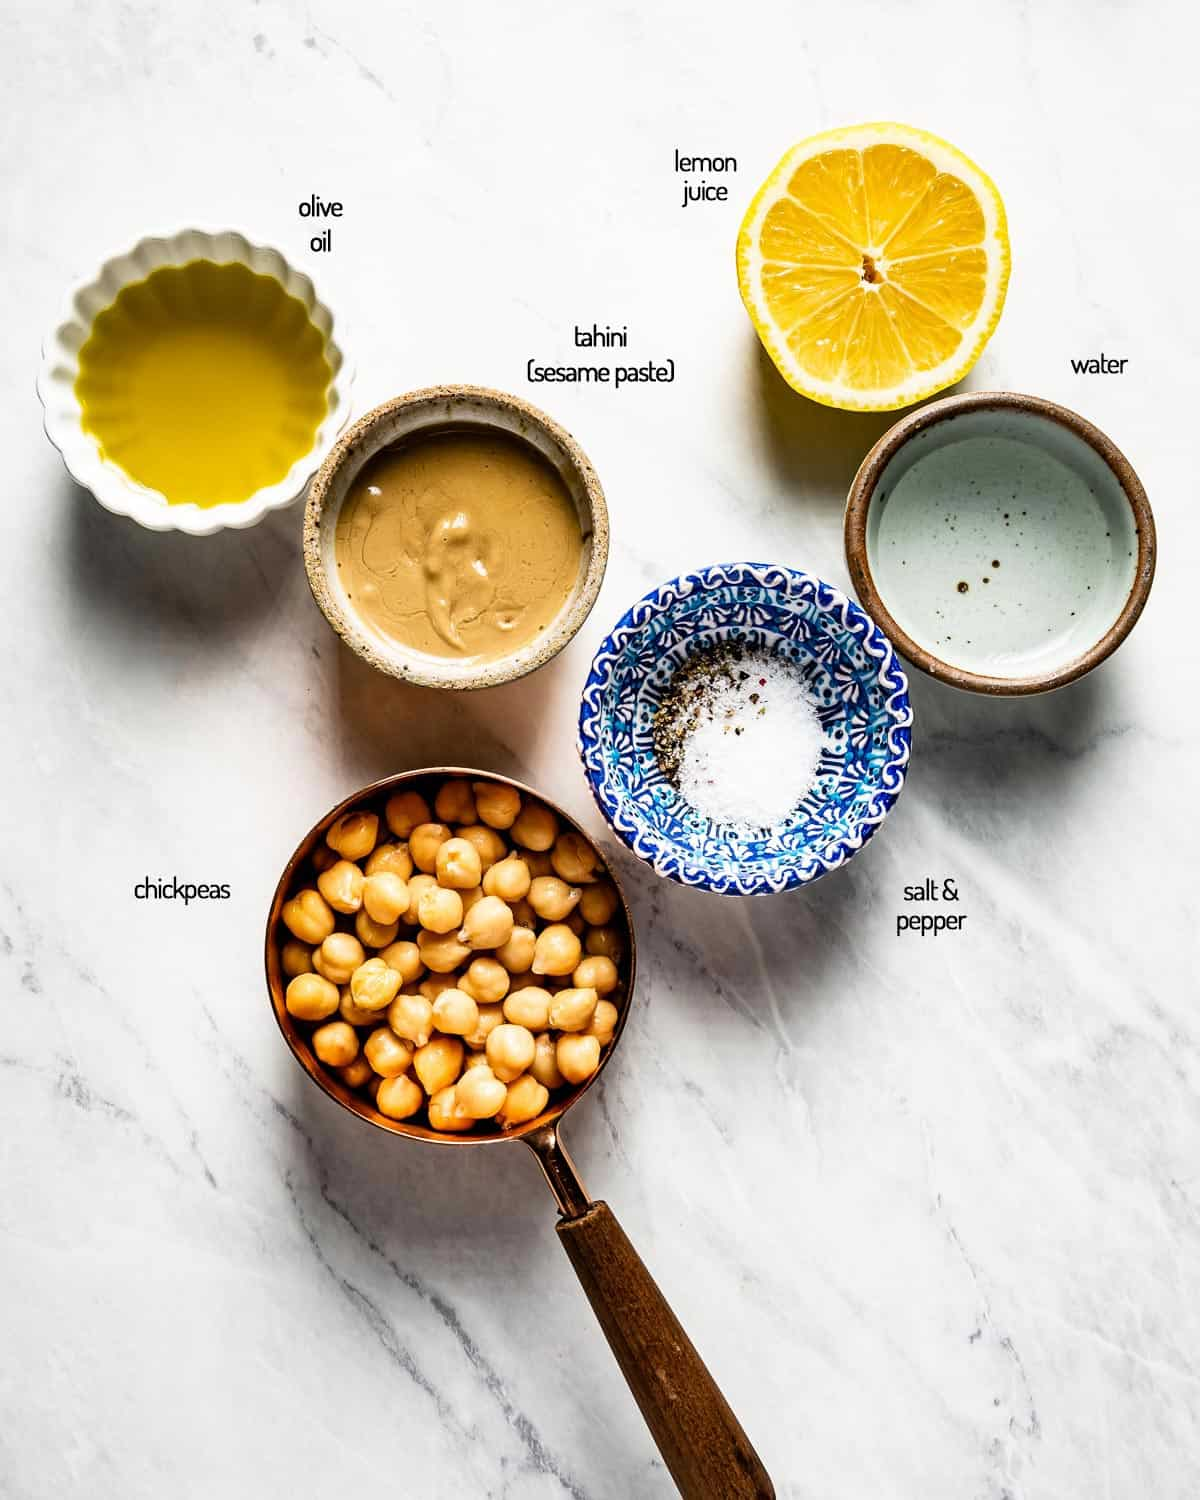 Regular hummus ingredients are portioned out and placed on a marble backdrop